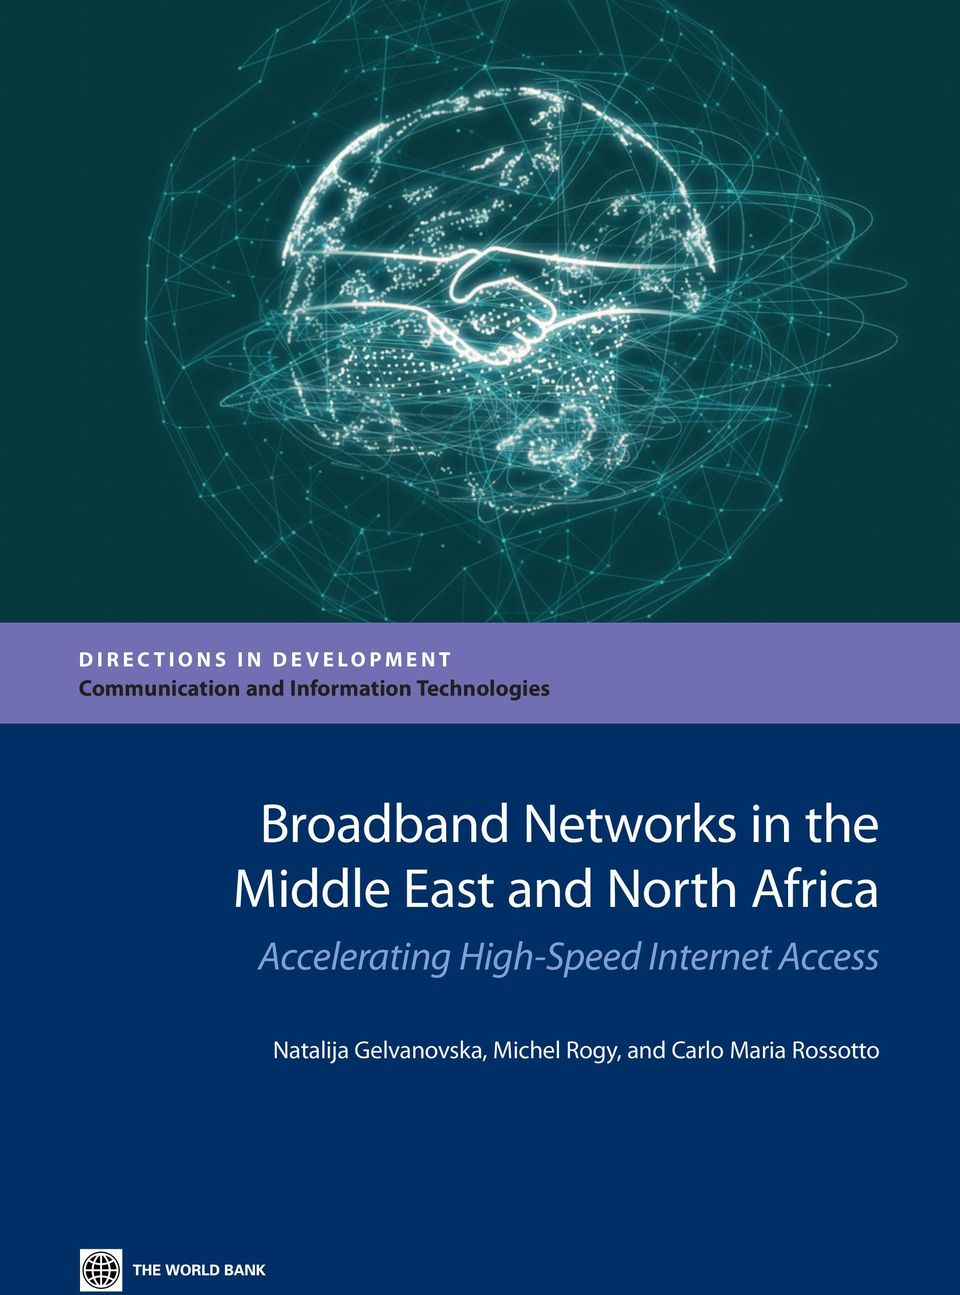 North Africa Accelerating High-Speed Internet Access